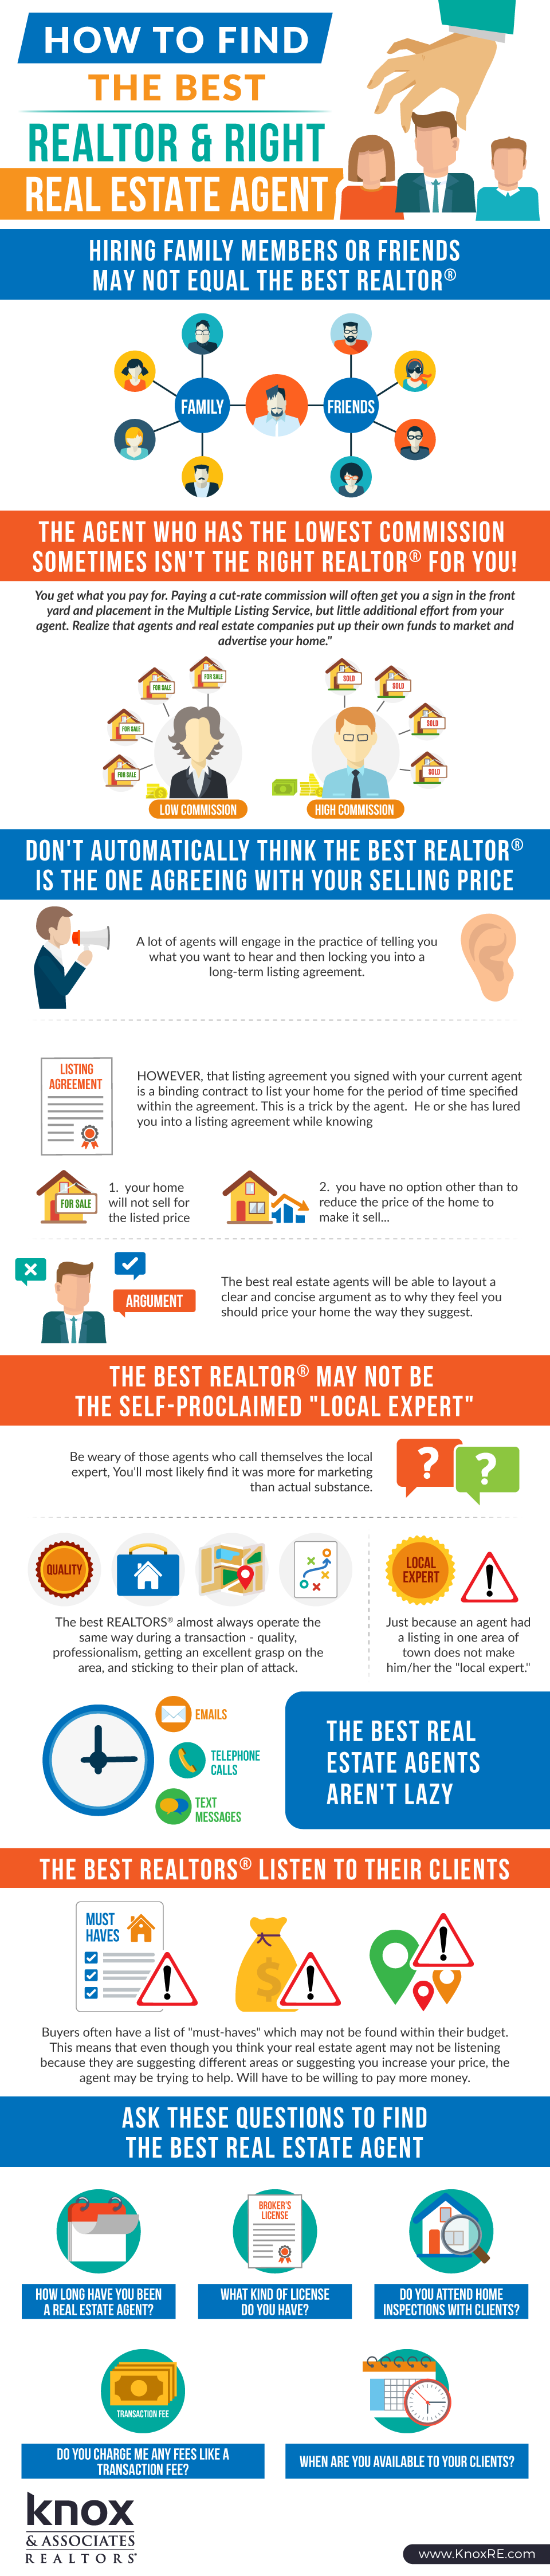 best real estate agent - how to find the best realtor